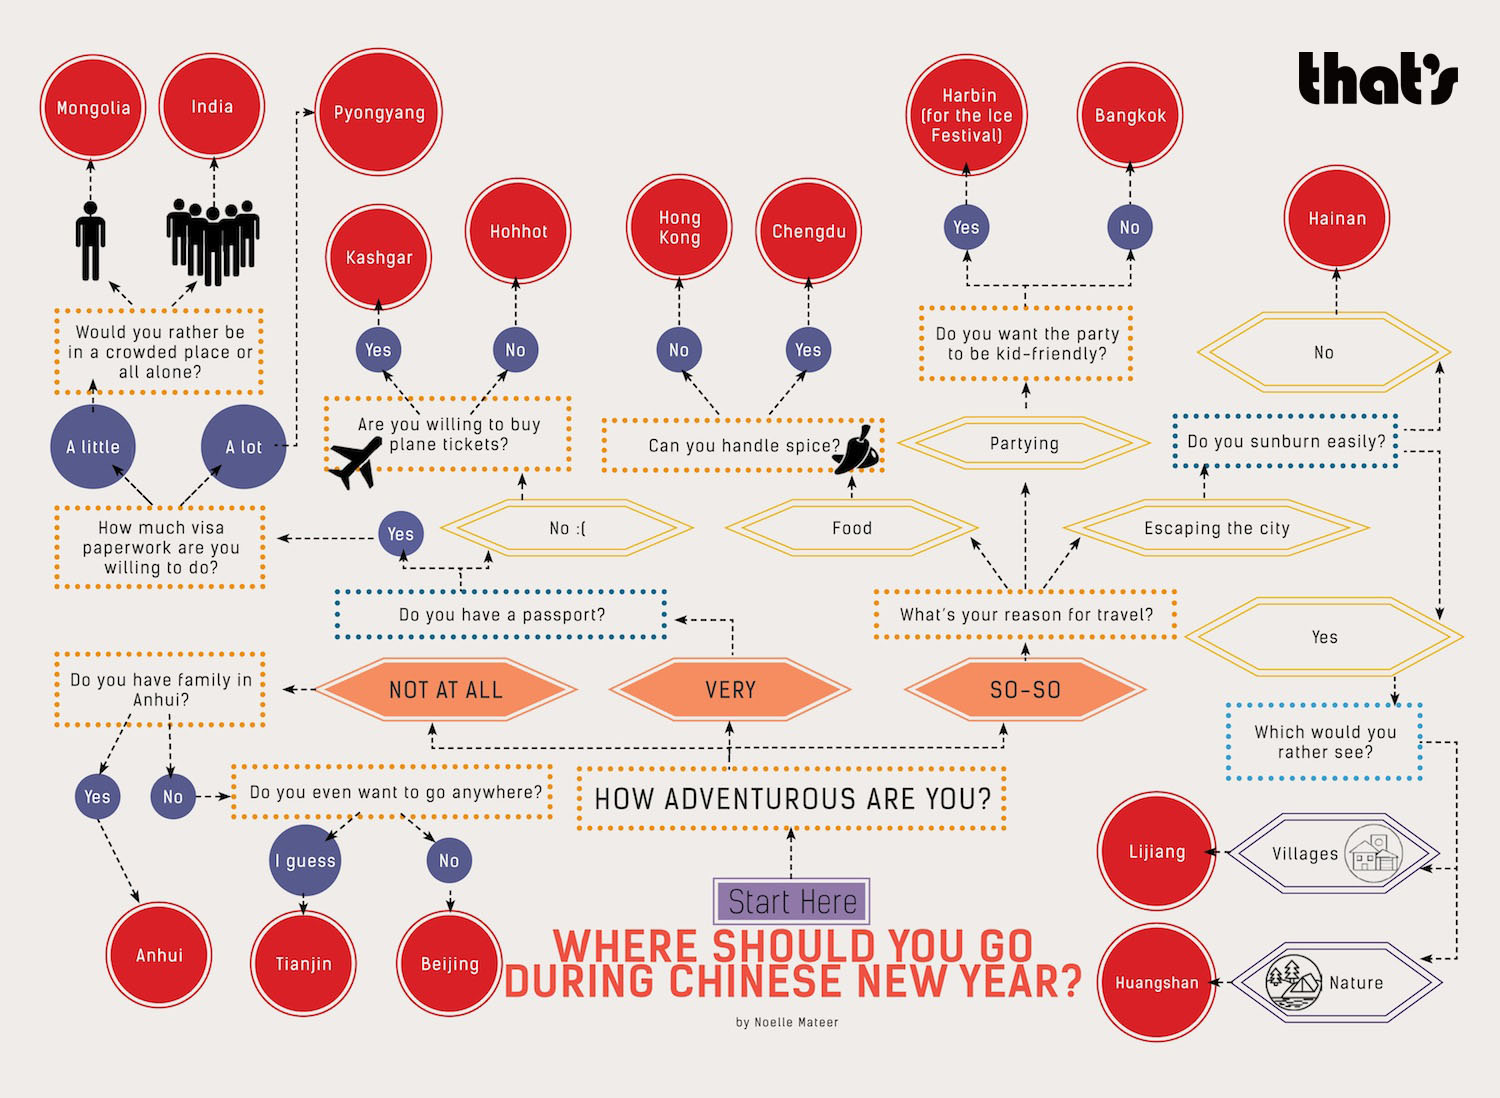 Quiz: Where should you go for Chinese New Year?